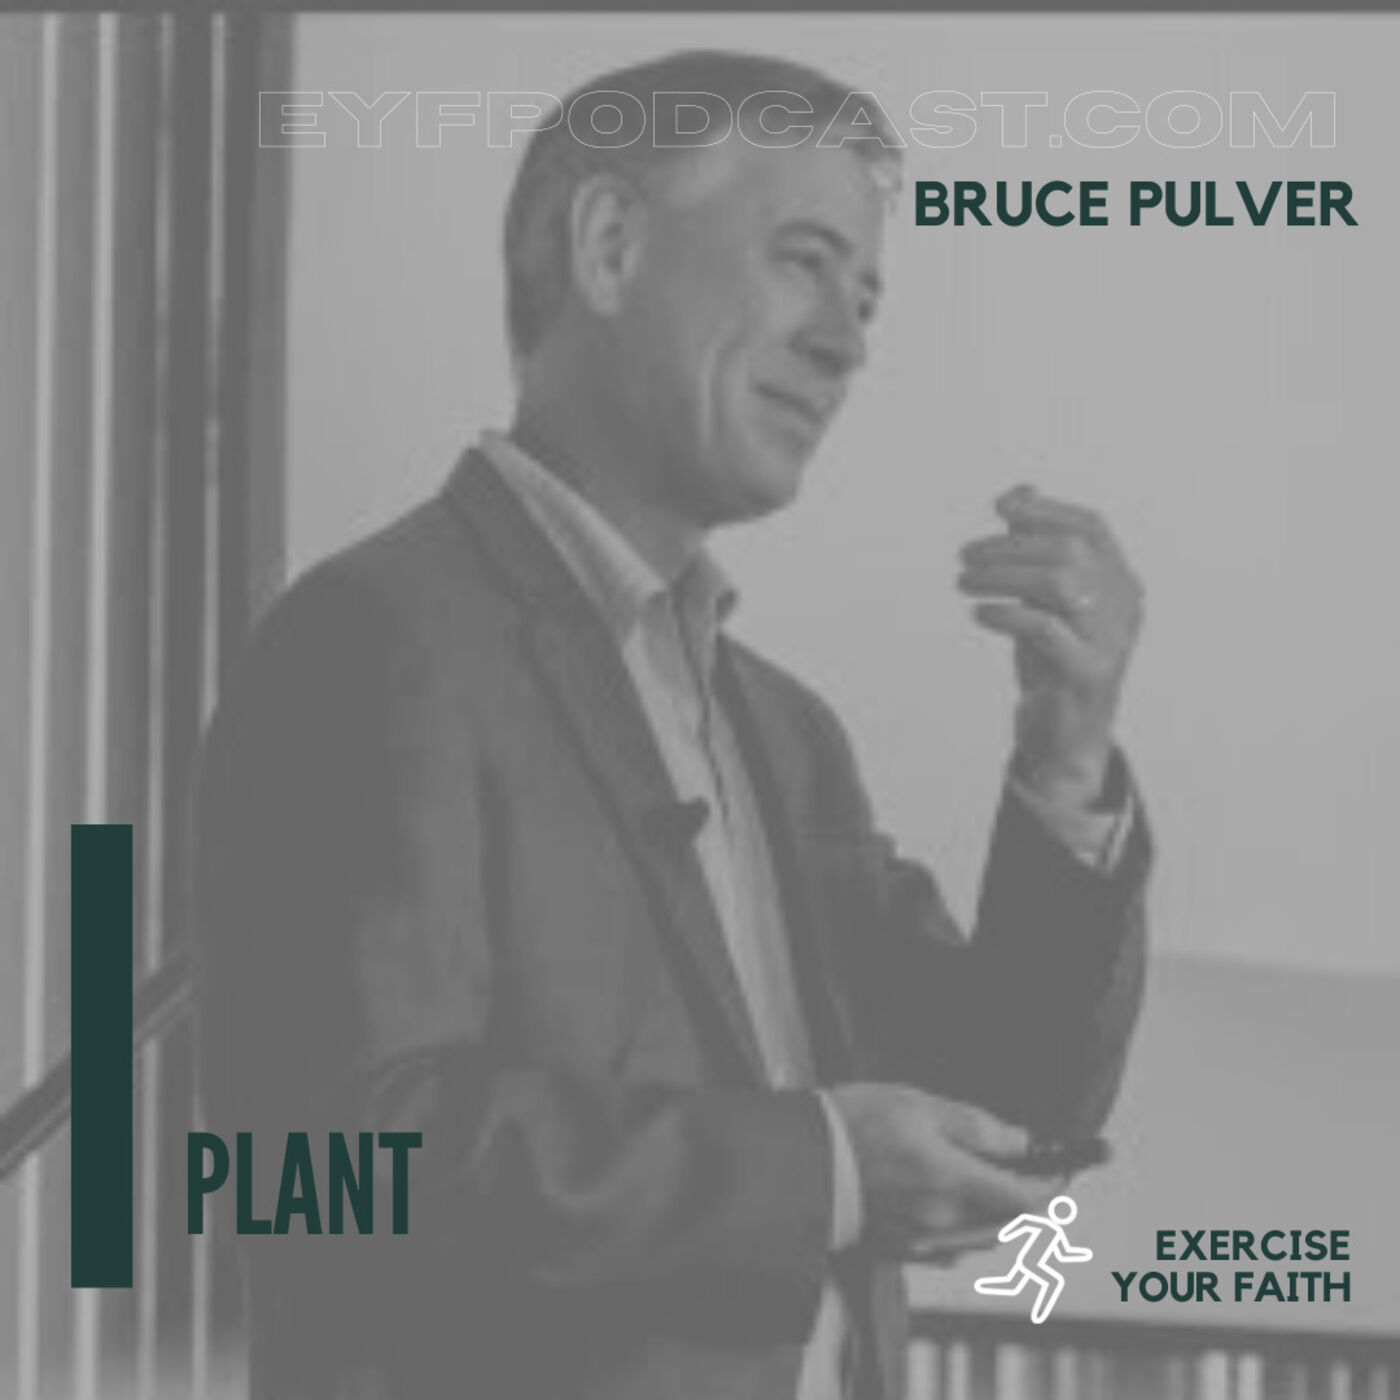 EYFPodcast- Exercise Your Faith with Bruce Pulver as we learn to PLANT what God has given us.